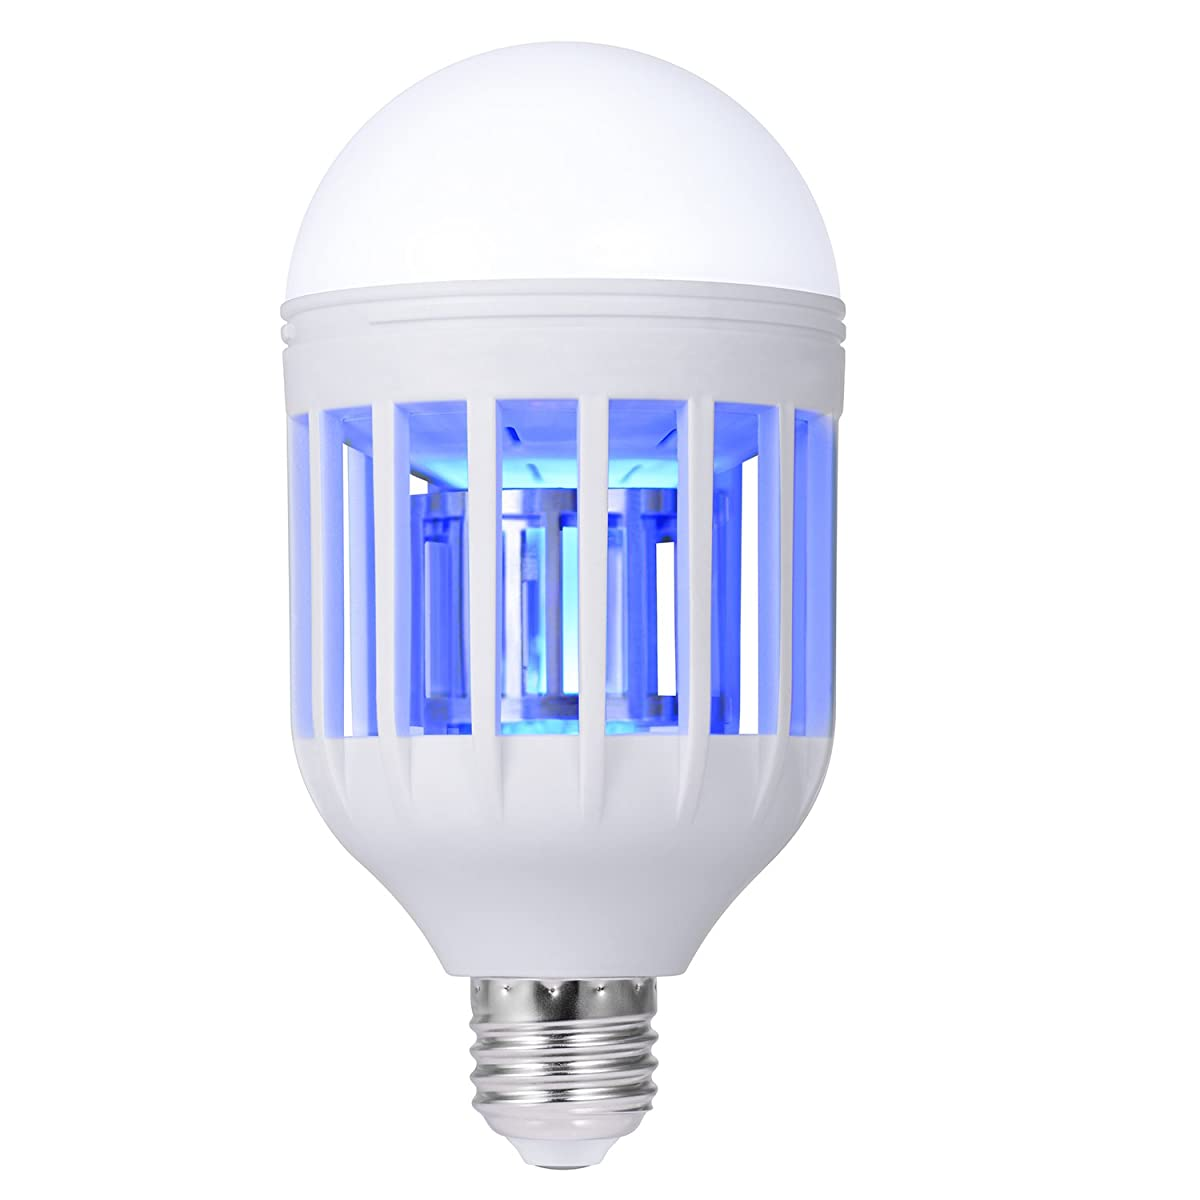 Boomile Bug Zapper Light Bulb, Electronic Insect Killer, Mosquito Zapper  Lamp, Fly Killer, Built In Insect ...